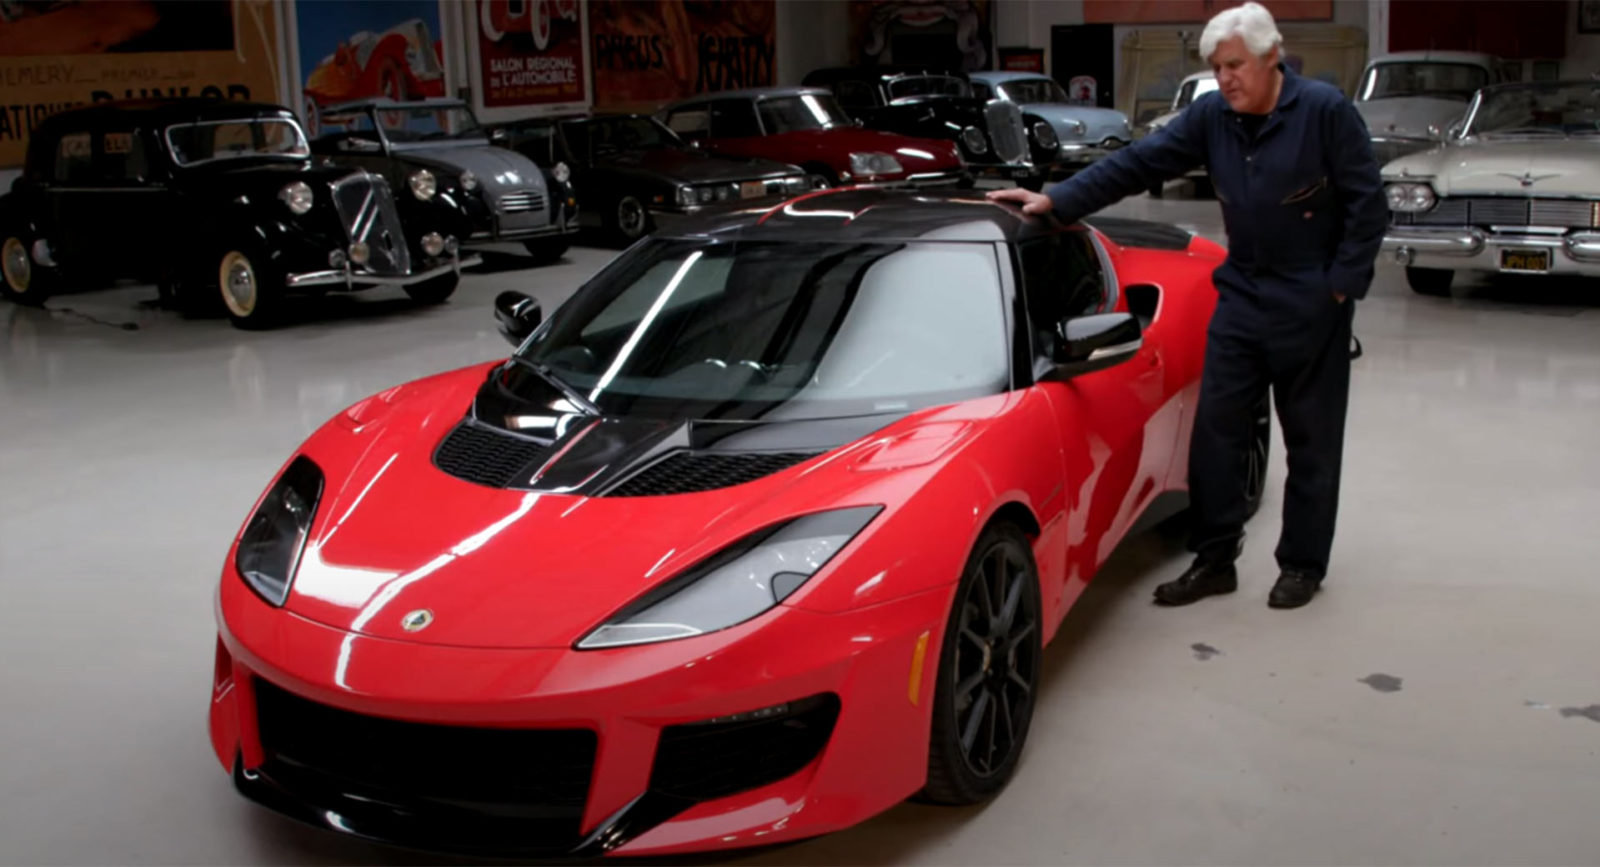 jay-leno-declares-2020-lotus-evora-gt-one-of-the-best-handling-cars-on-earth